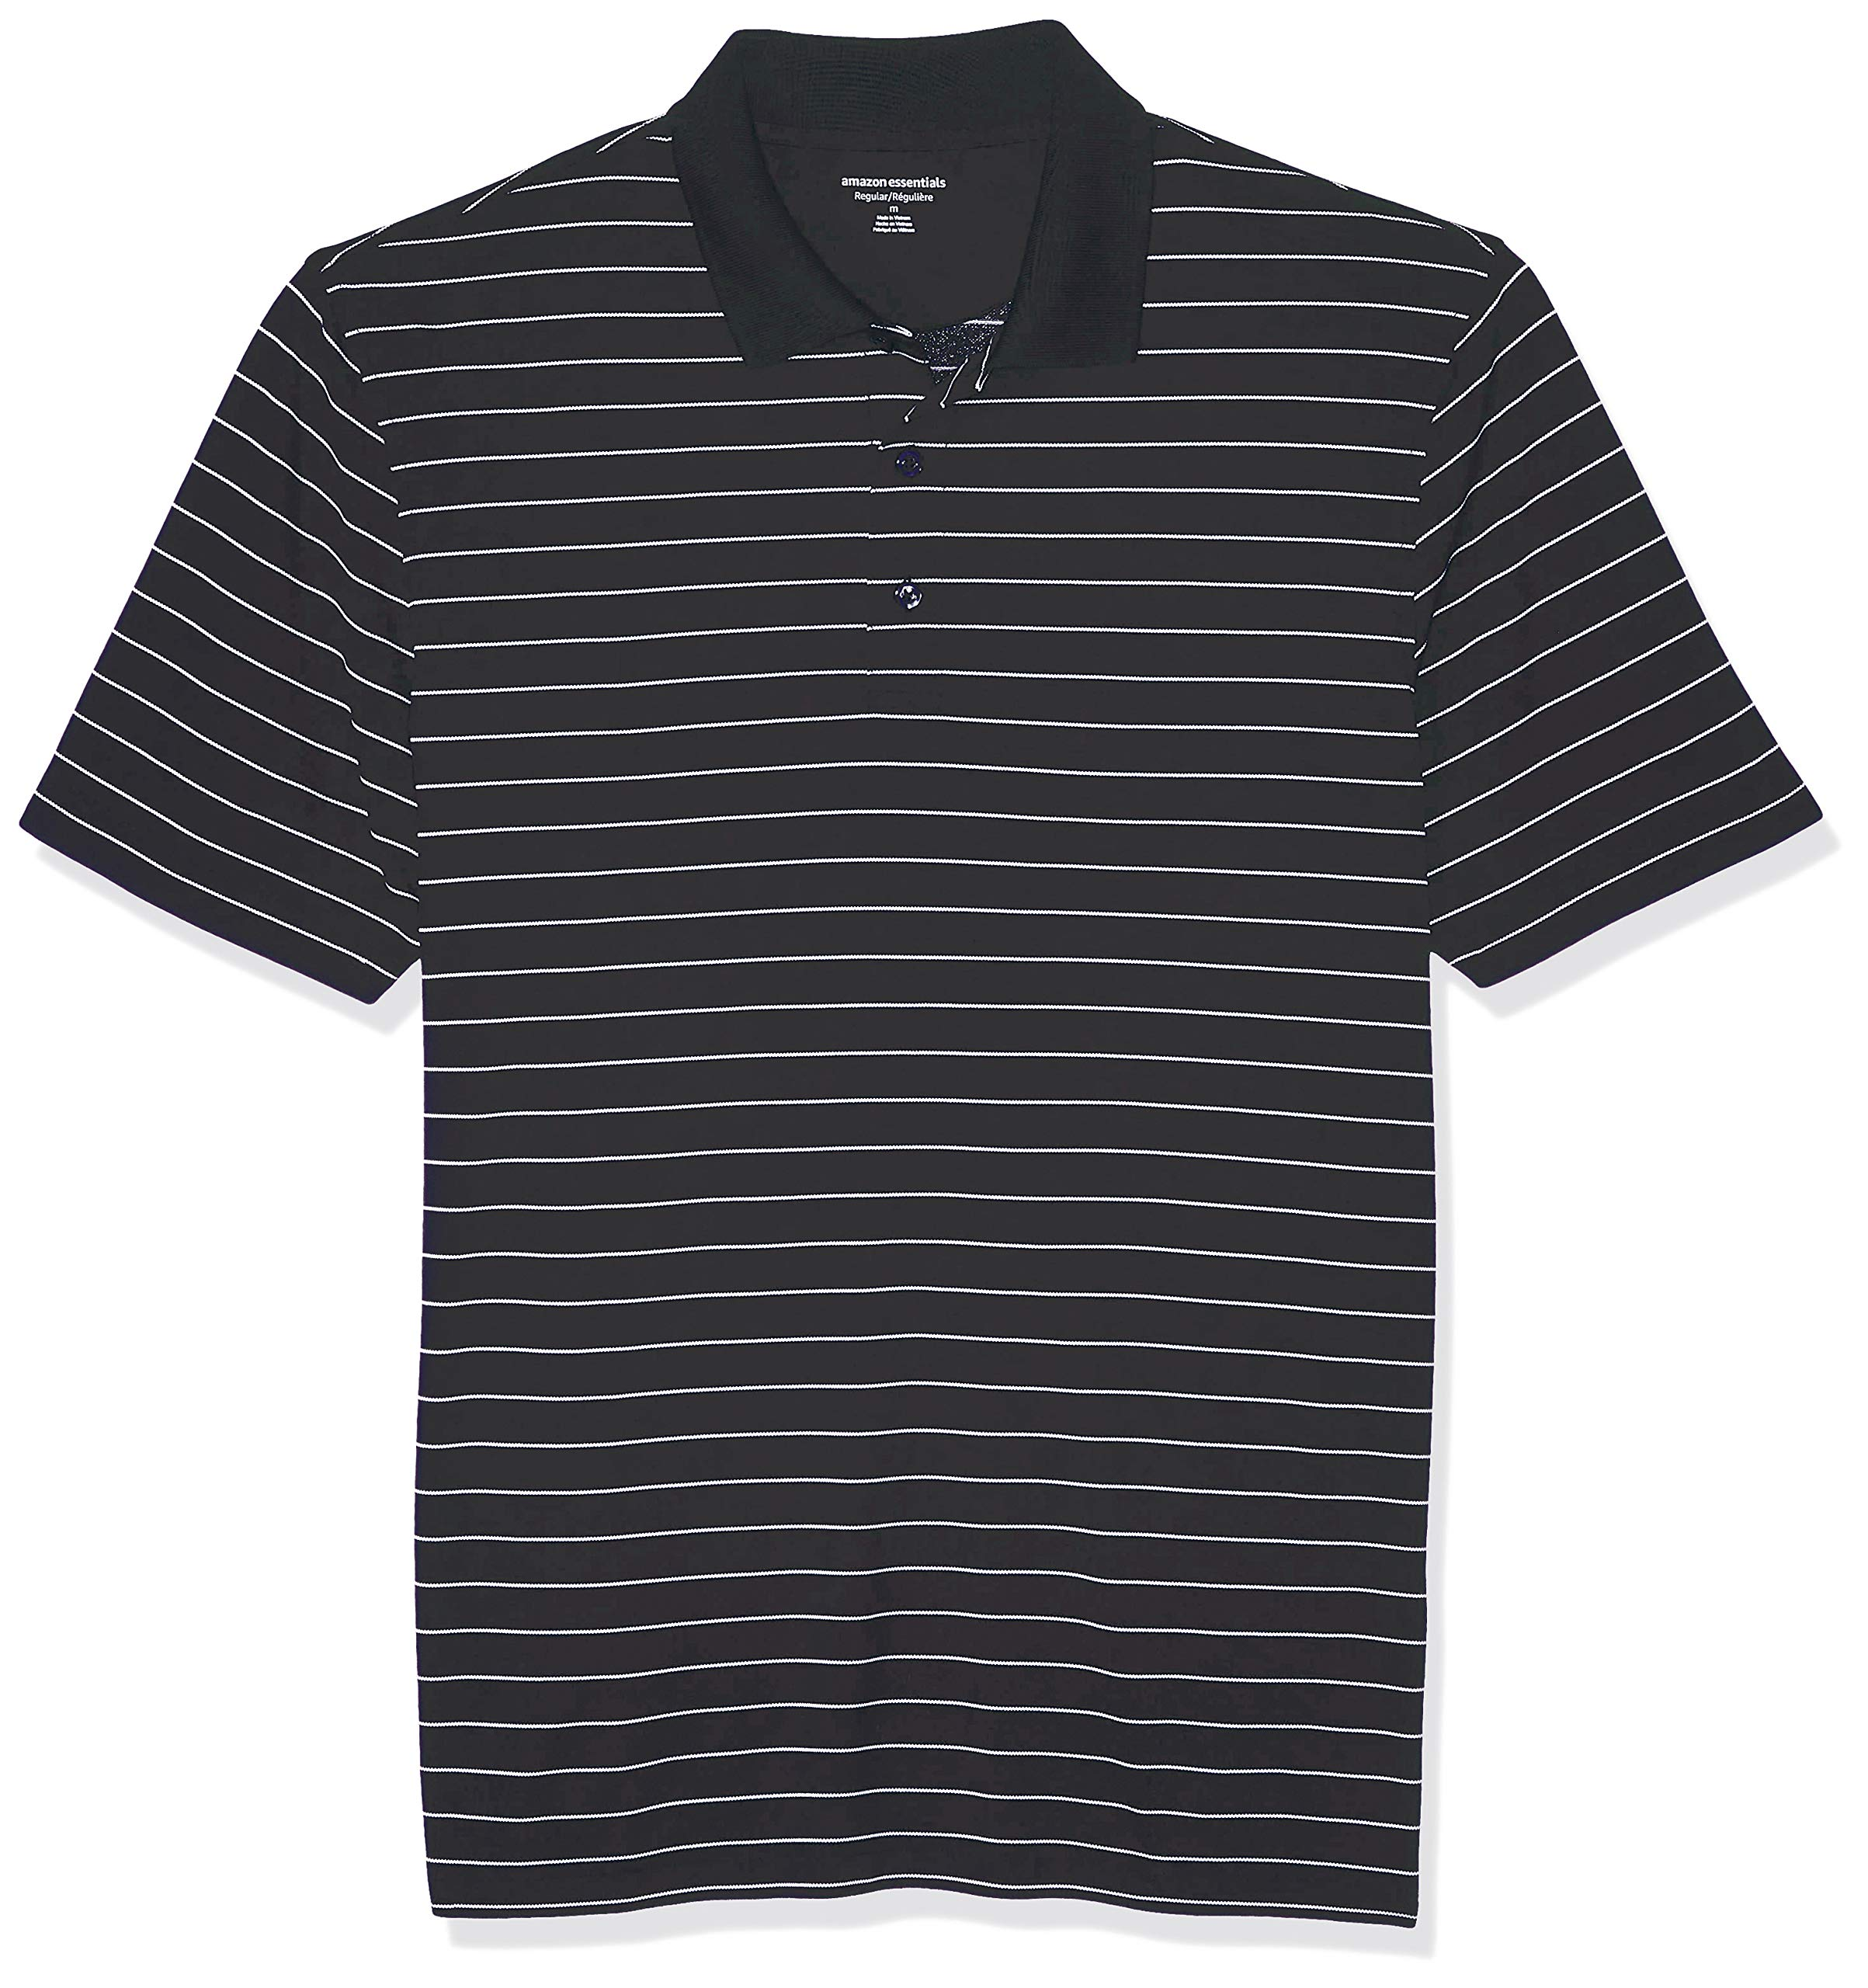 Amazon Essentials Men's Regular-Fit Quick-Dry Golf Polo Shirt, Black Stripe, X-Small